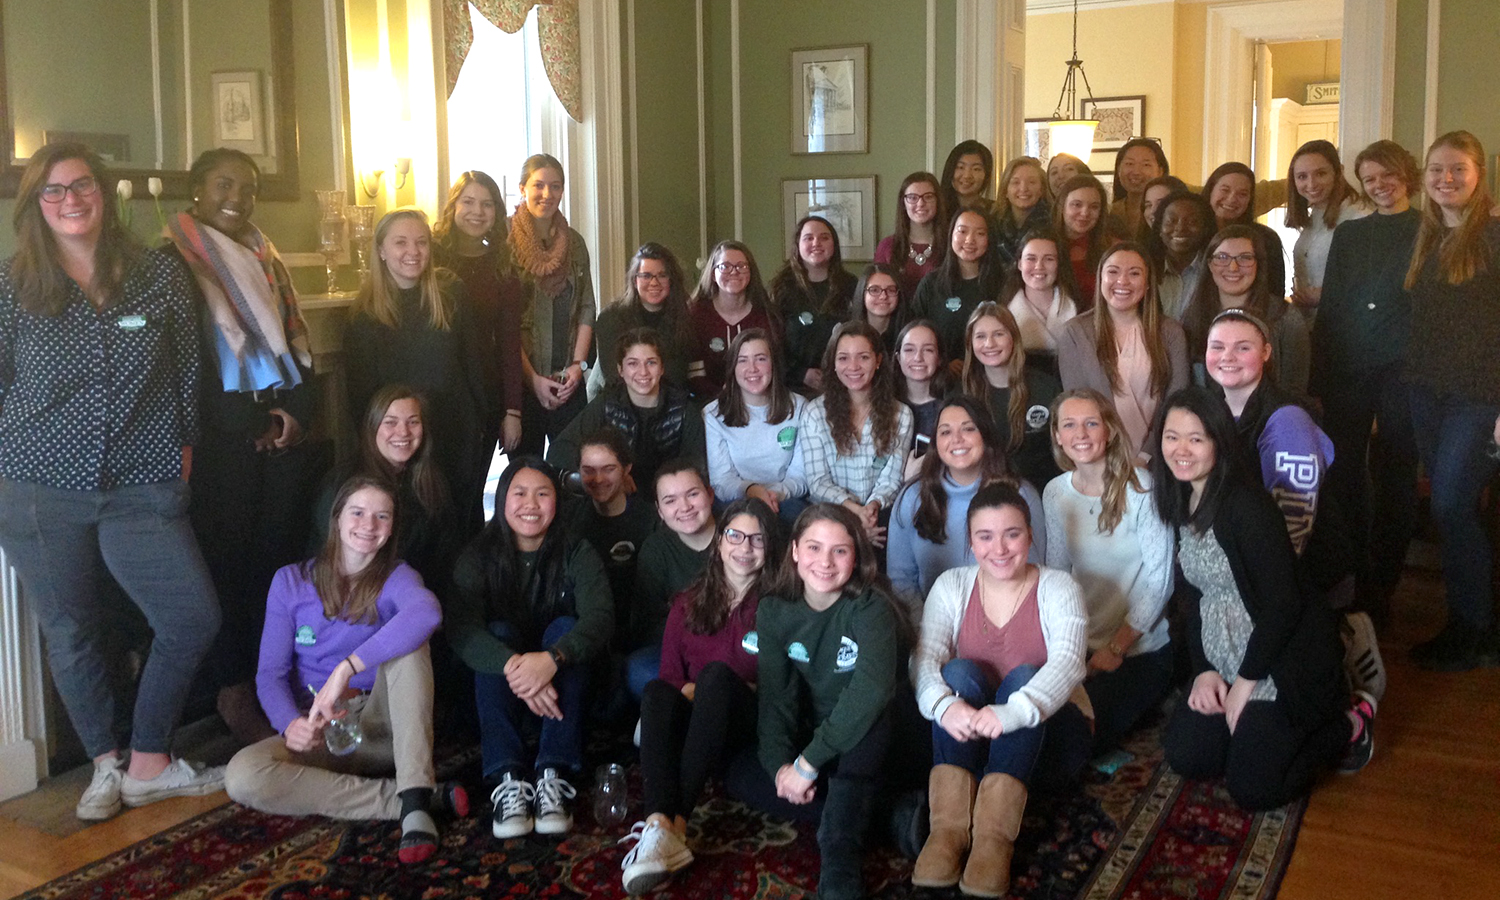 Members of the William Smith Laurel Society and Geneva High School students pose for a group photo at the Leadership League of Women Welcome Back Reception at the William Smith Inn on Sunday.